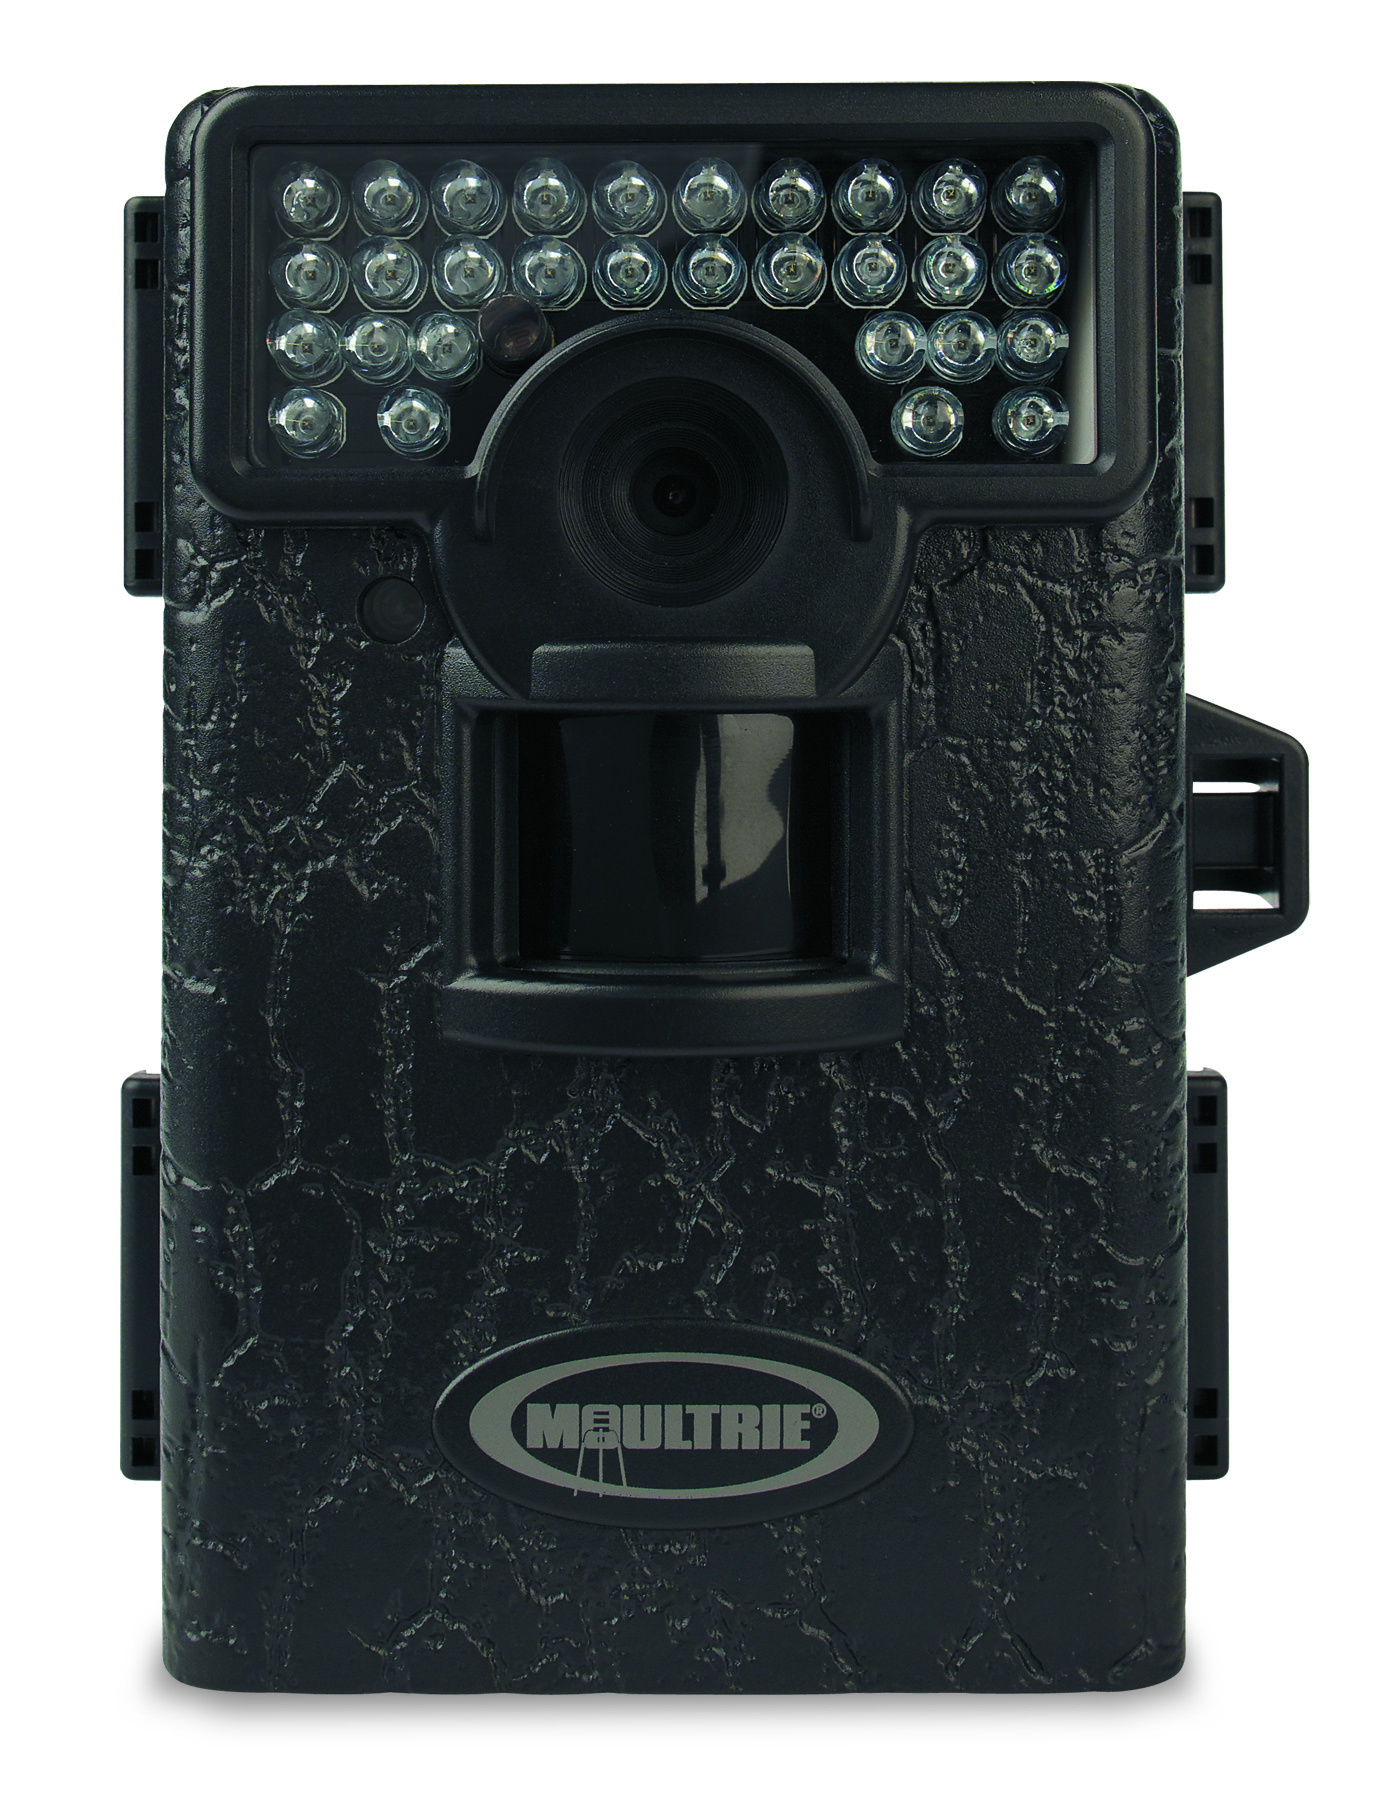 Moultrie's new Game Spy M-80XT packs feature into a small box. The next gen Game Spy is a